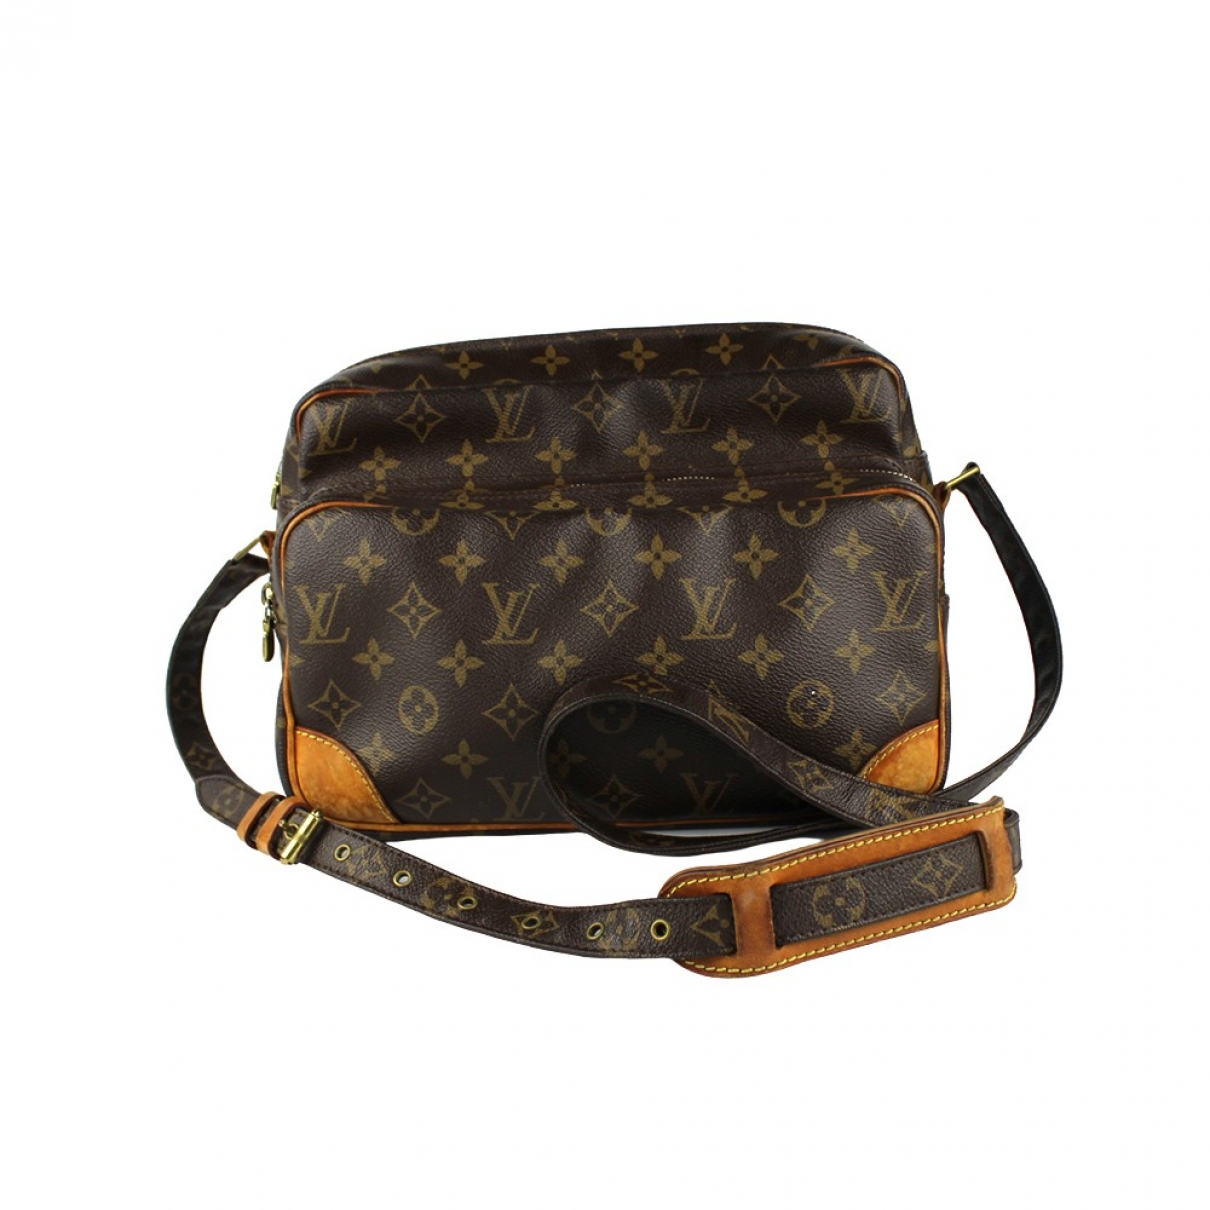 Bandolera Nile de Lona Louis Vuitton